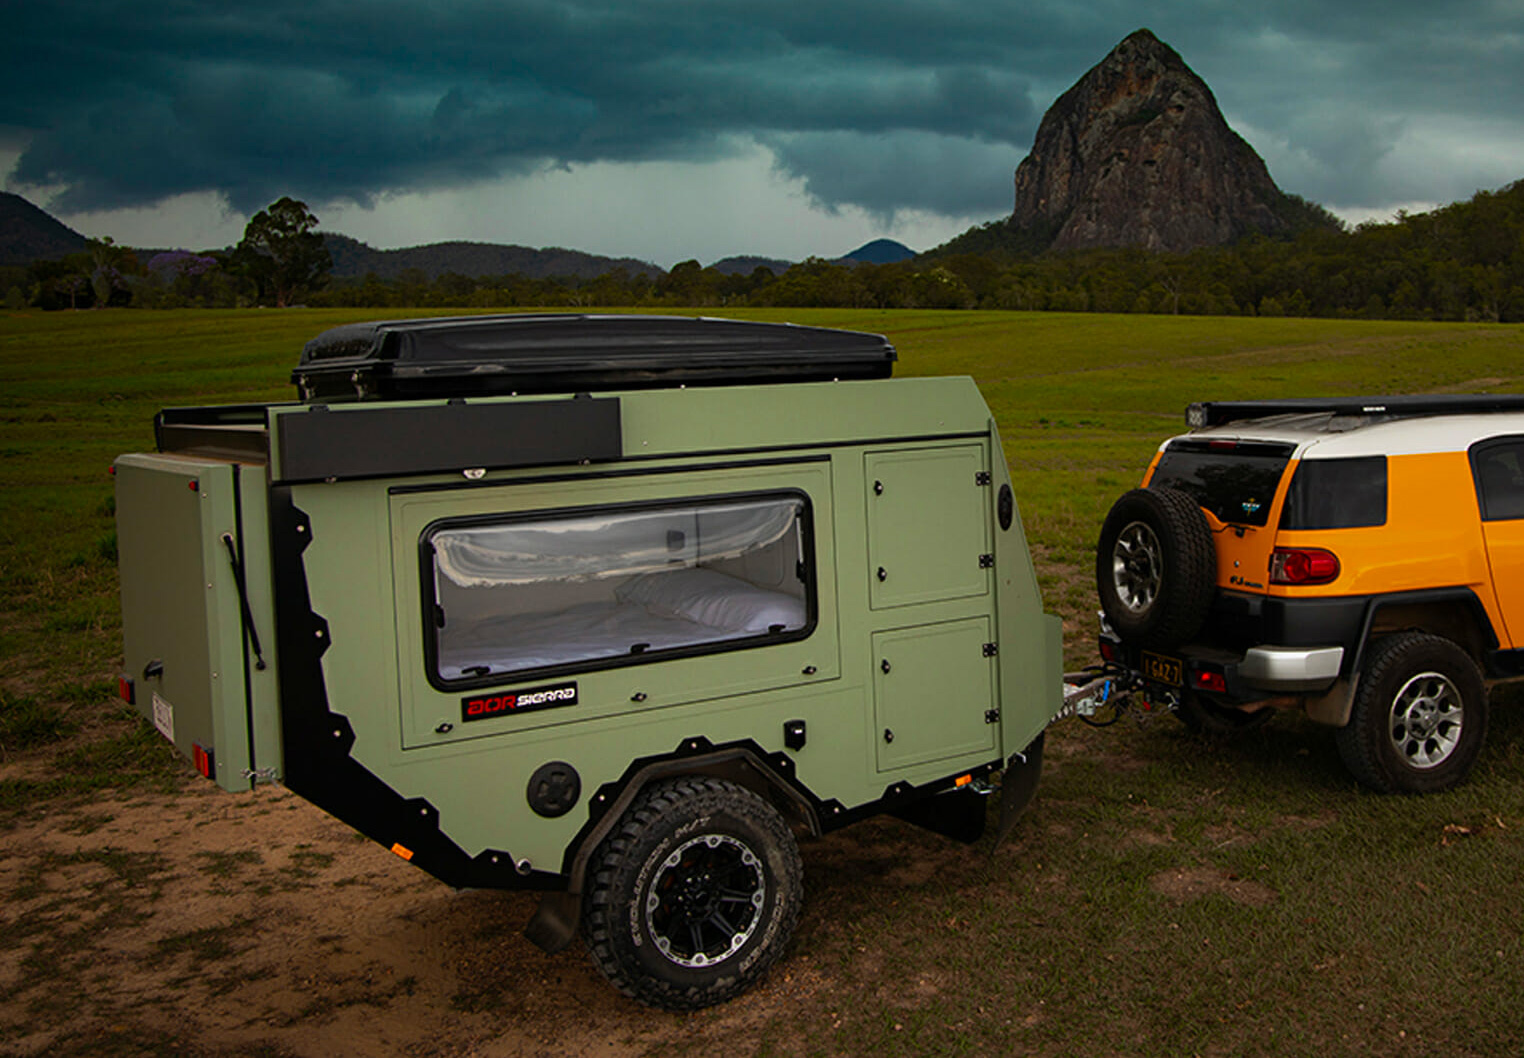 Australian Off-Road Introduces Compact Sierra Camper at werd.com